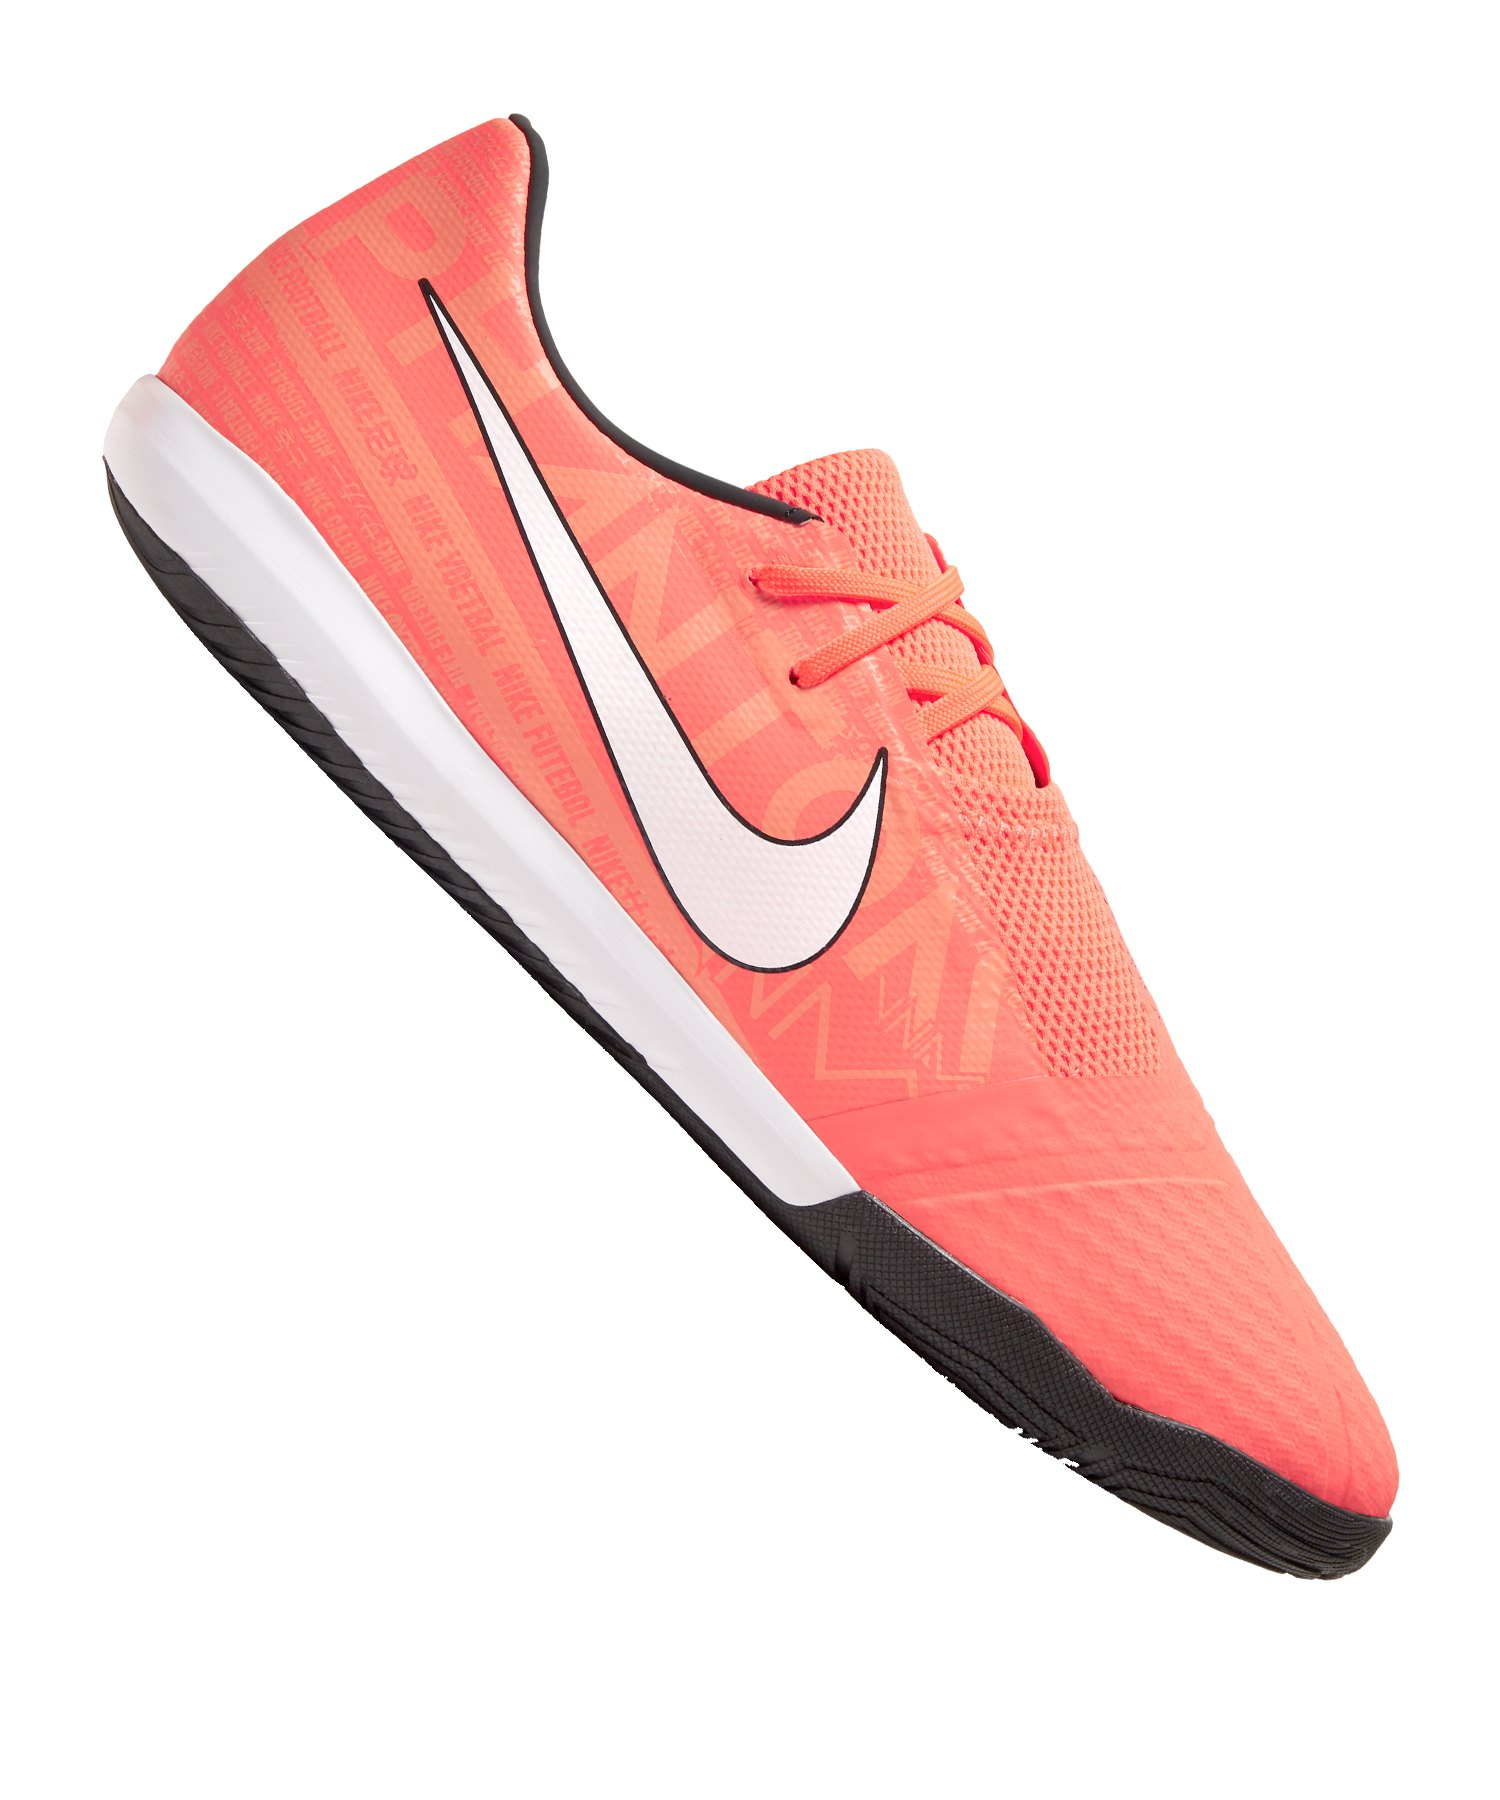 Nike Phantom Venom Academy IC Orange F810 - orange